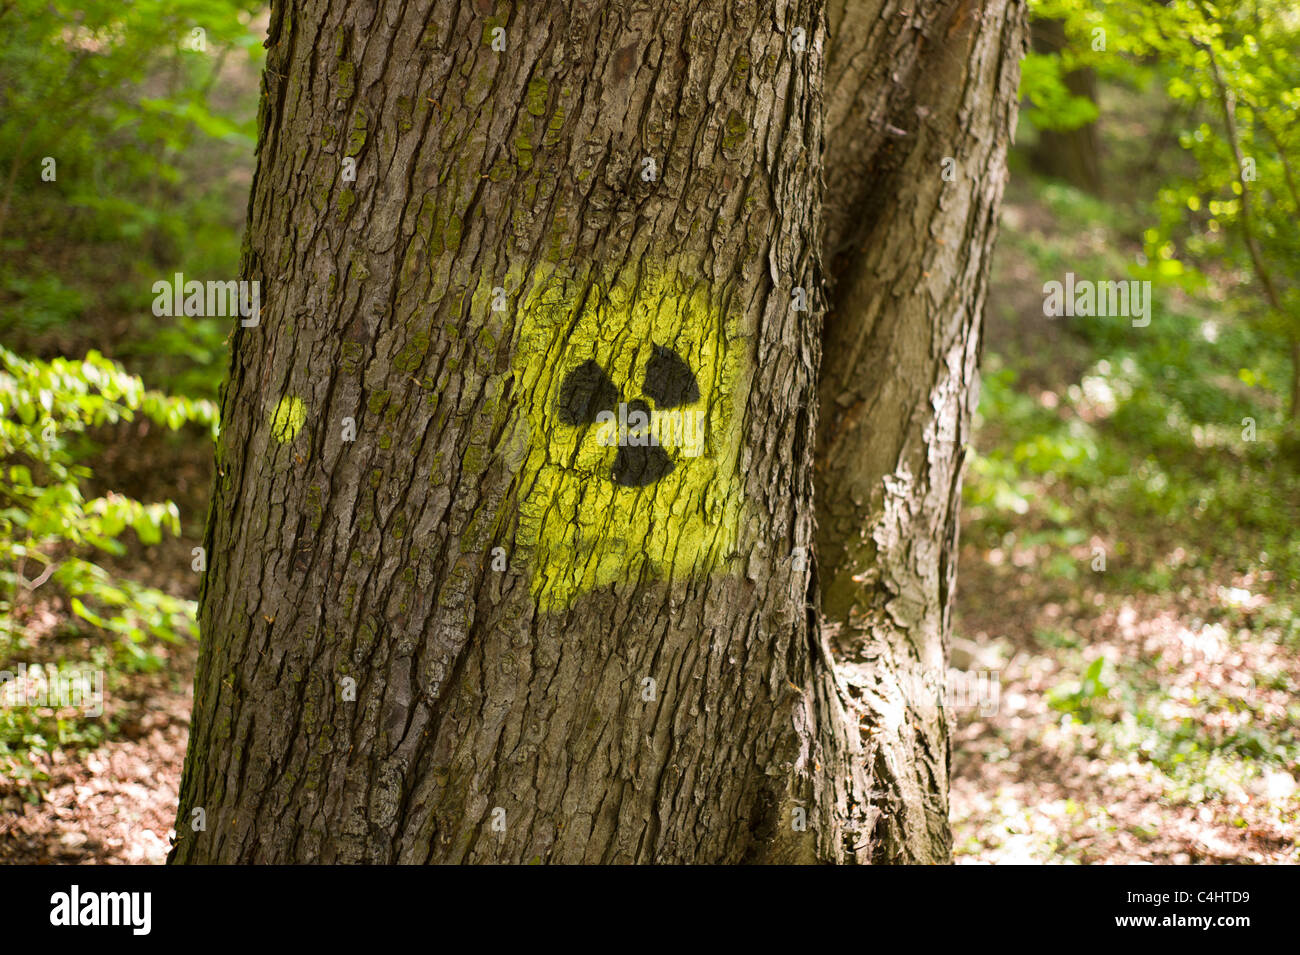 Graffito / graffiti: Black and yellow radiation symbol (trefoil) spayed on on the trunk of a tree in Munich, Germany Stock Photo